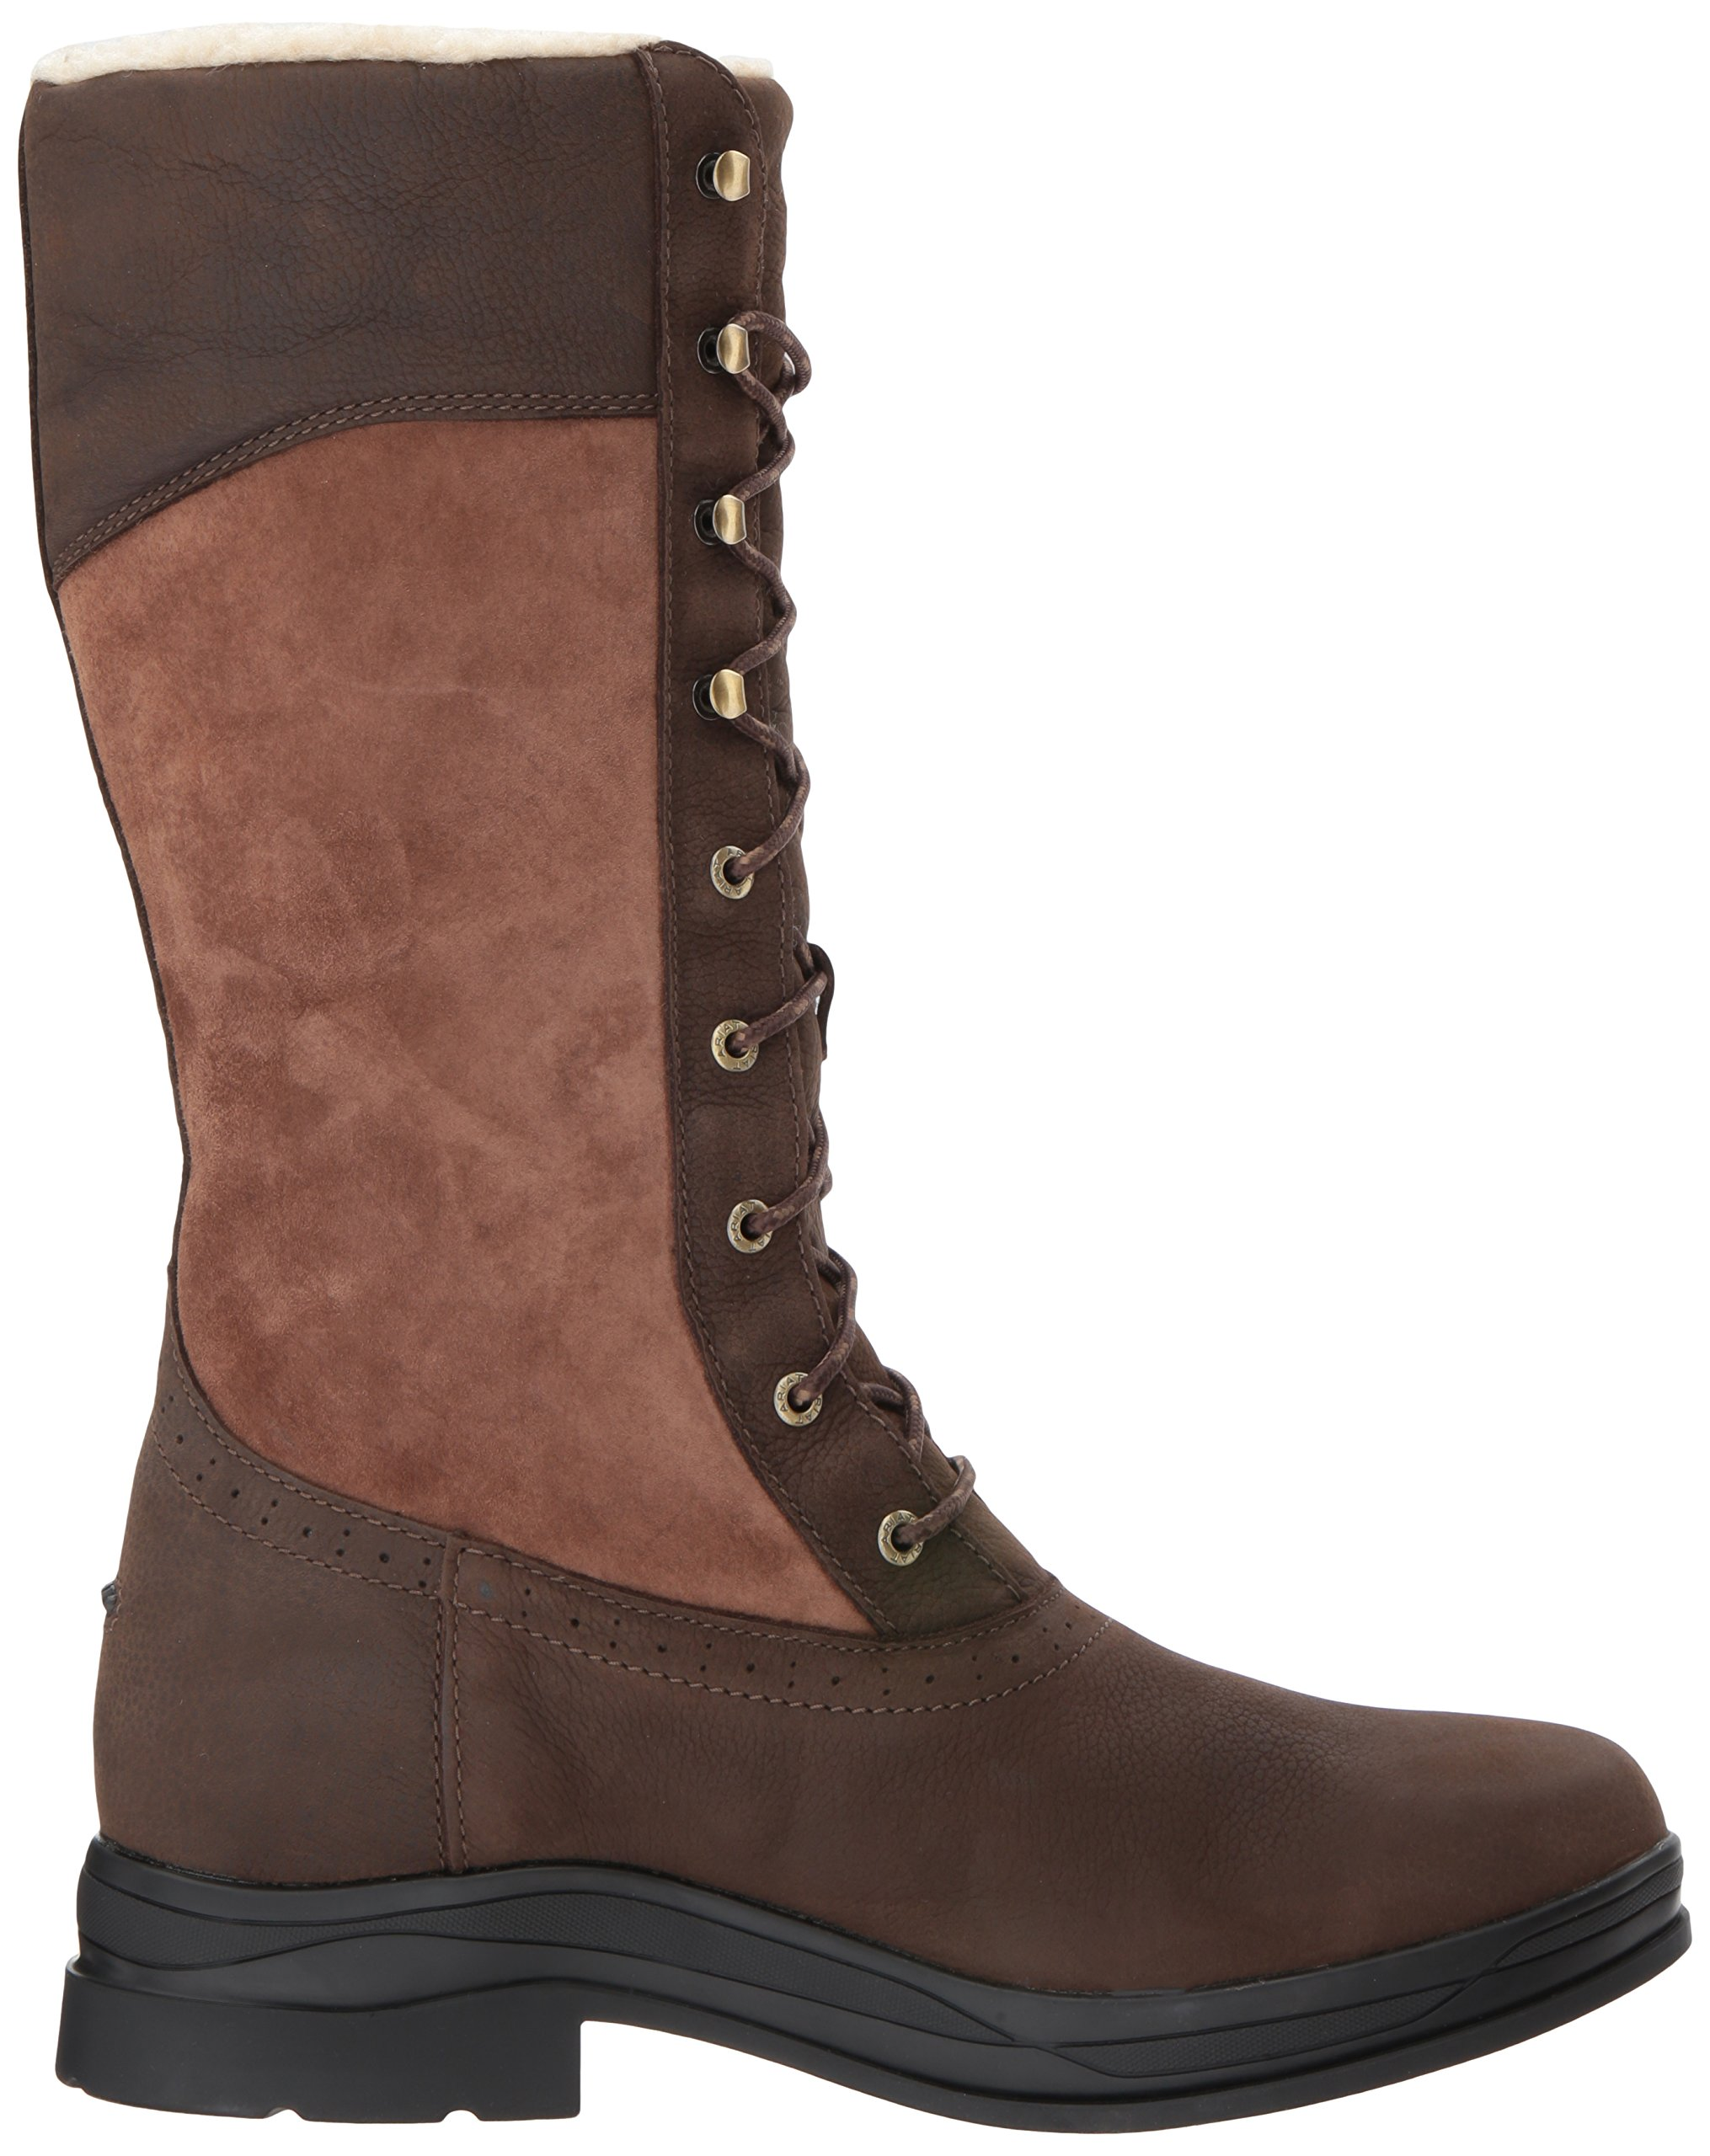 Ariat Women's Wythburn H2O Insulated Country Boot, Java, 7.5 B US by Ariat (Image #7)